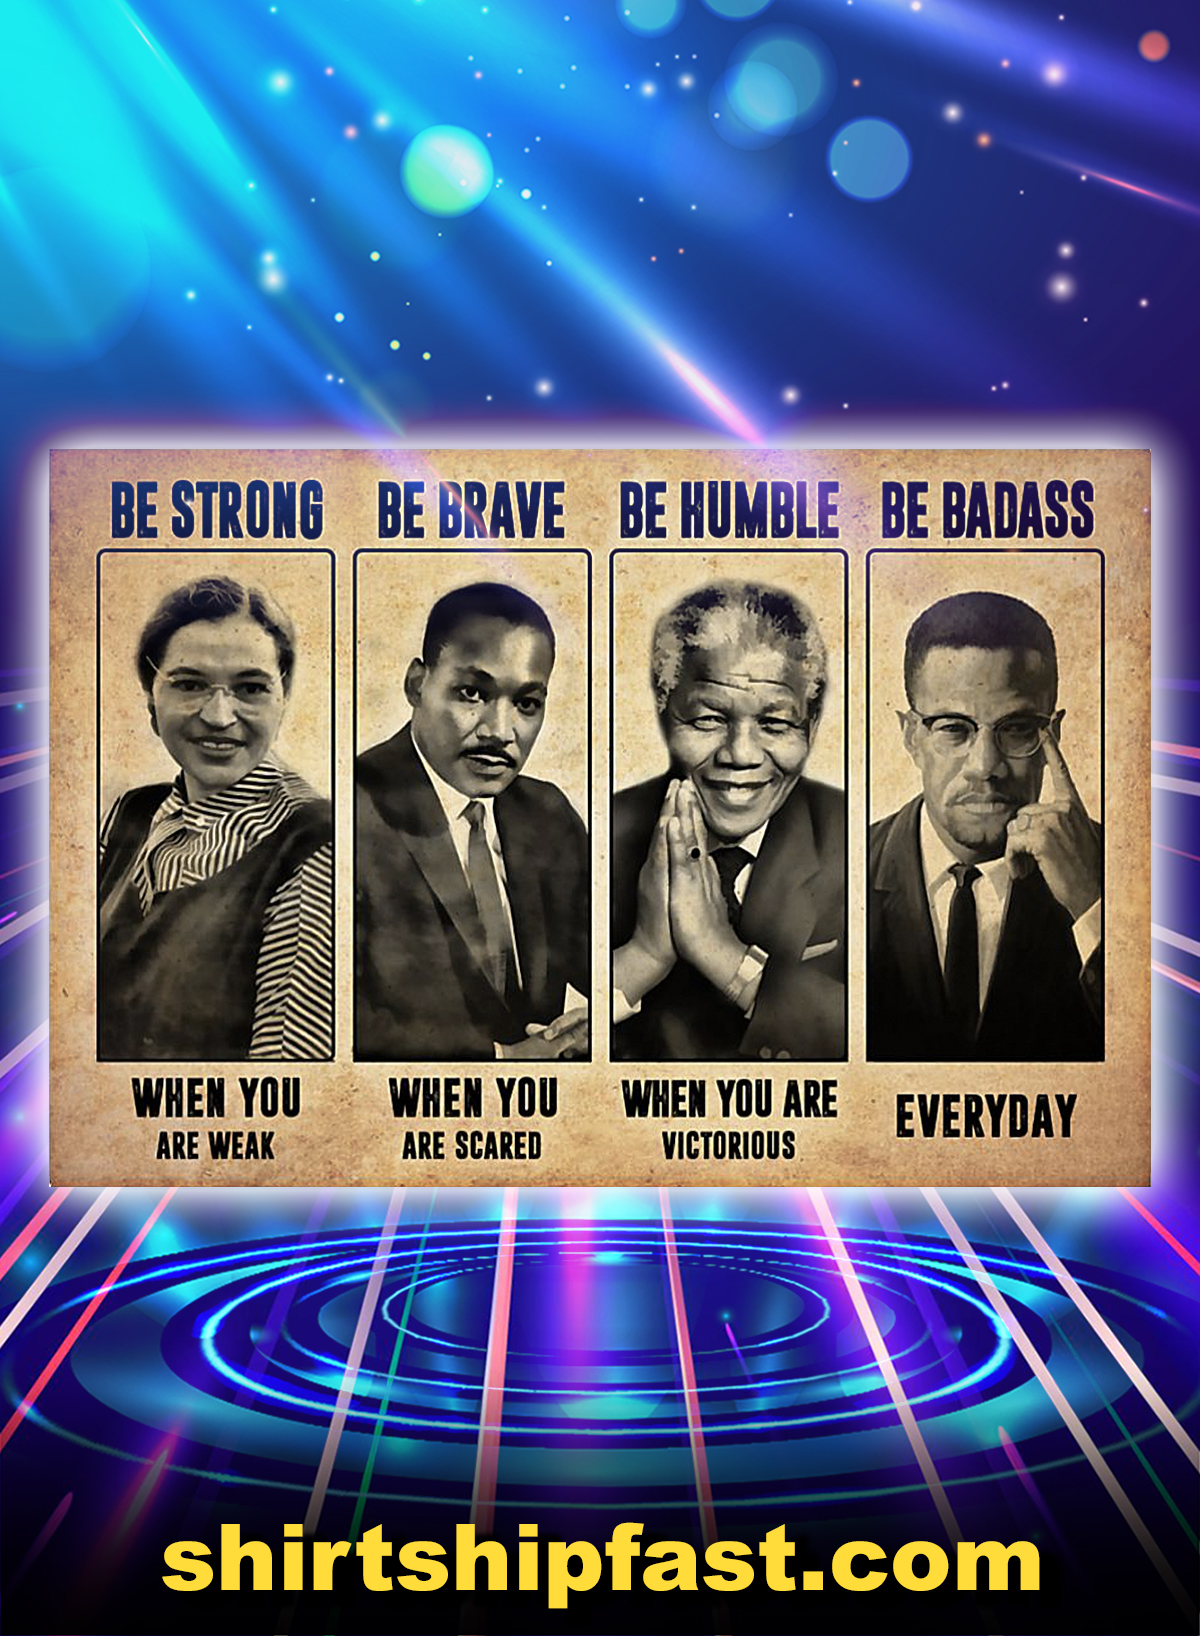 The famous people be strong be brave be humble be badass poster